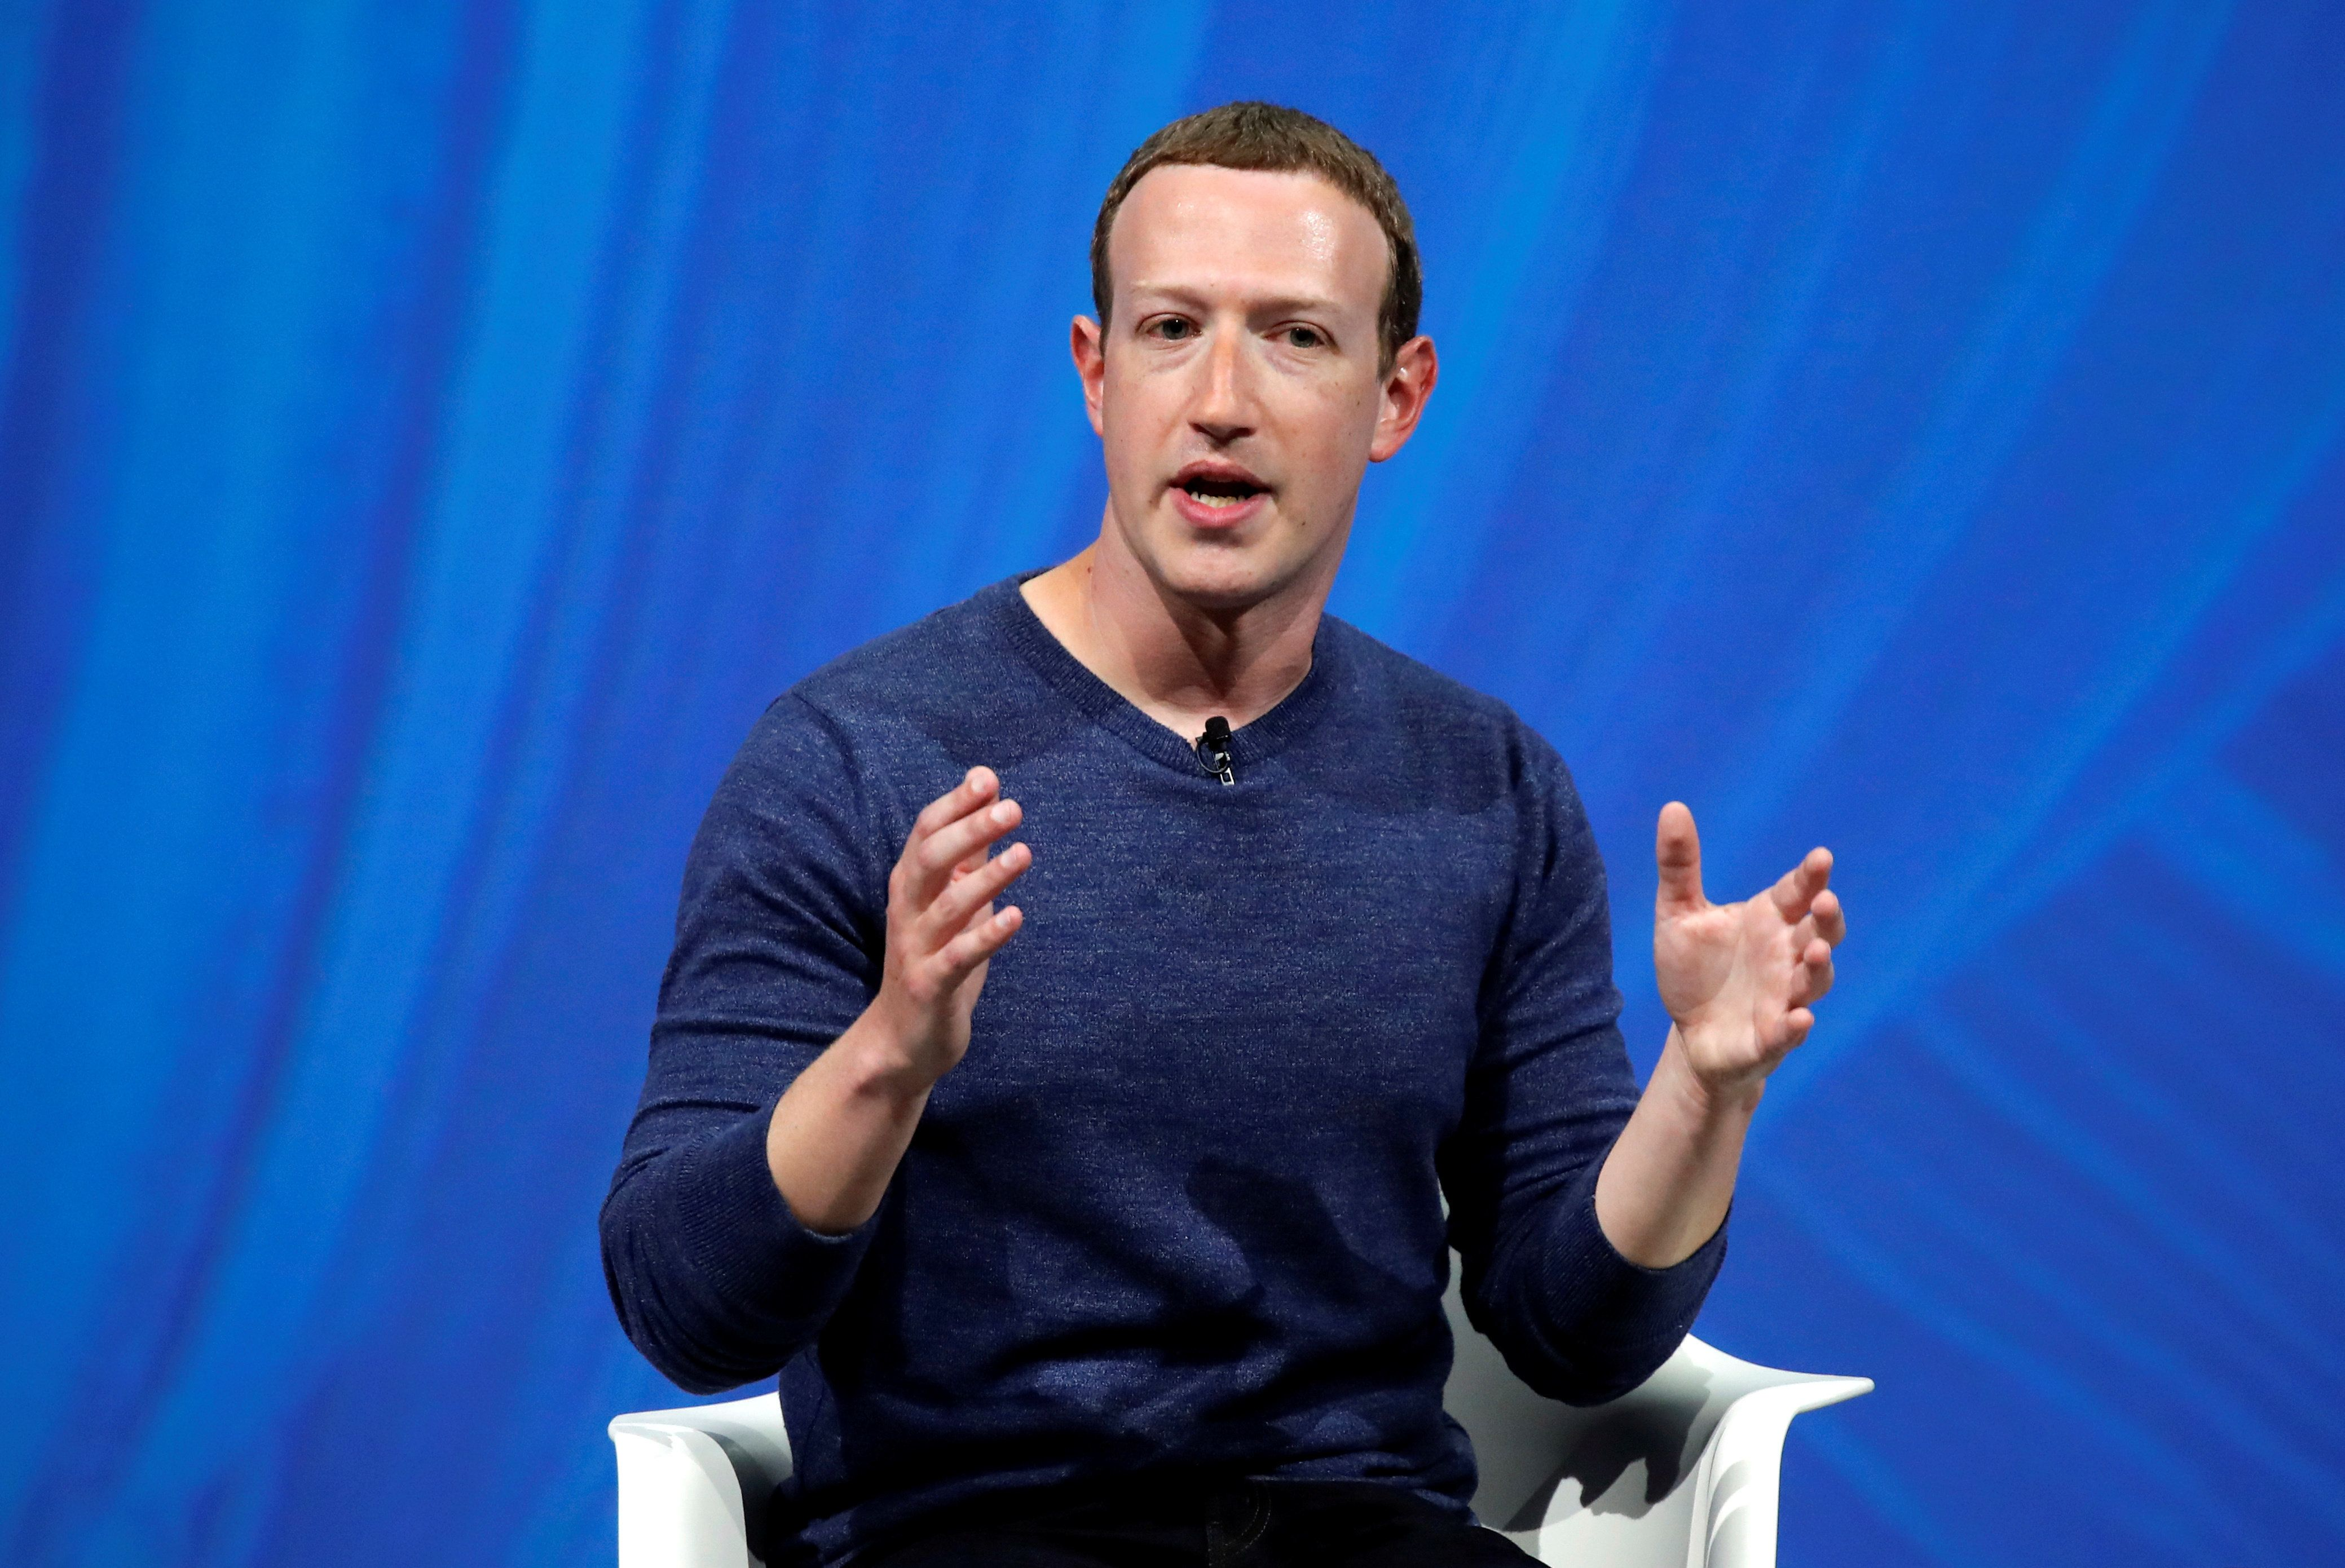 Facebook's founder and CEO Mark Zuckerberg speaks at the Viva Tech start-up and technology summit in Paris, France, May 24, 2